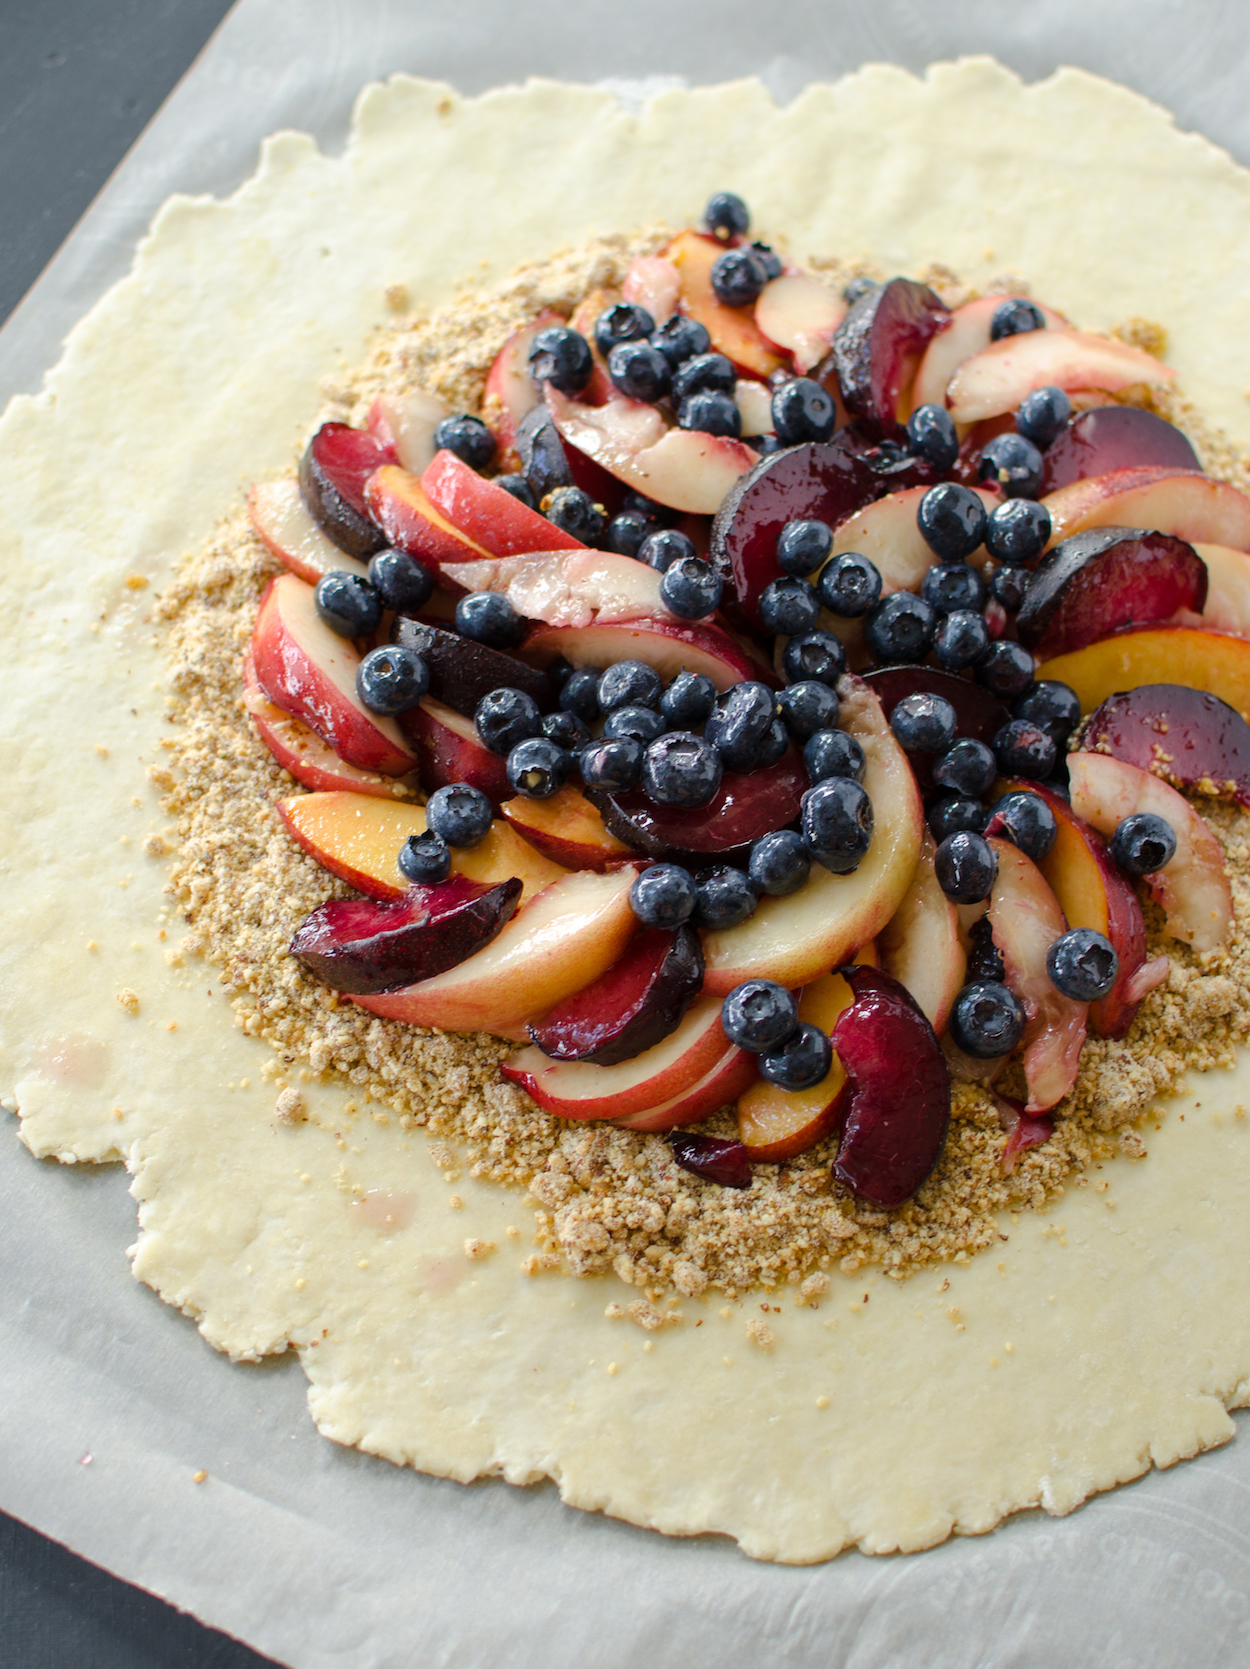 nectarine, plum and blueberry galette